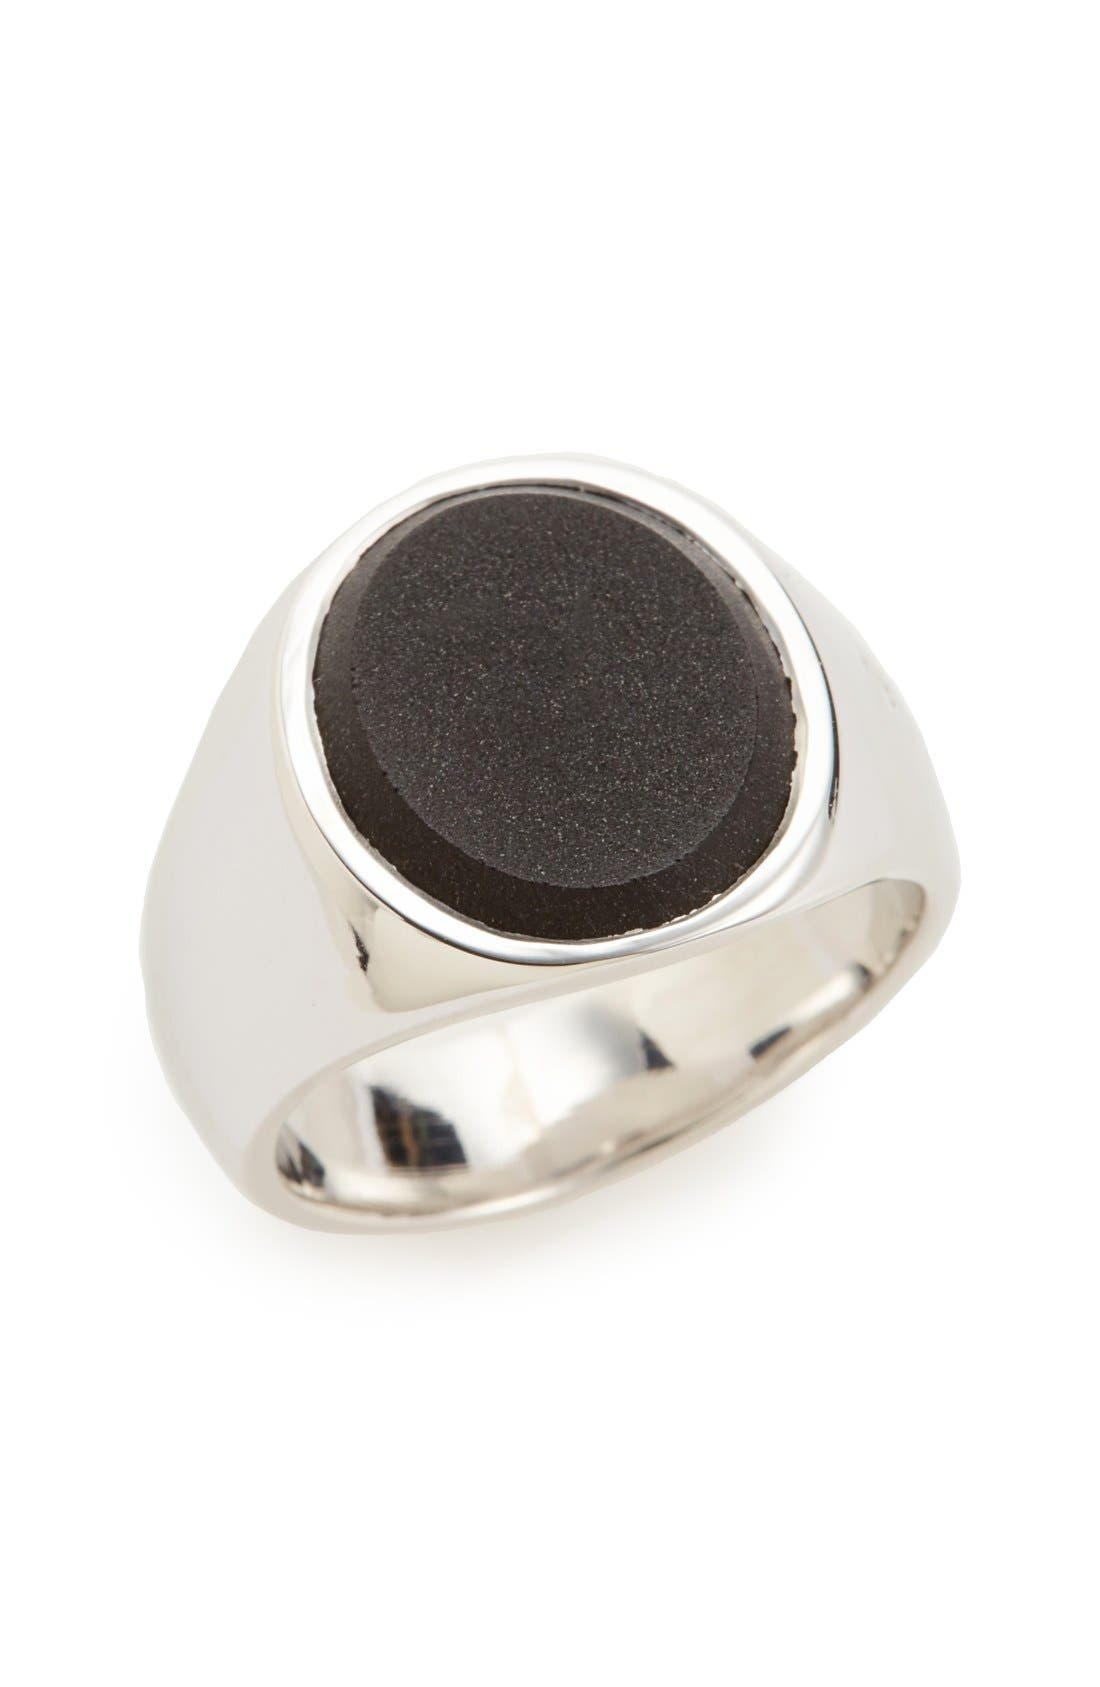 Patriot Collection Oval Black Onyx Signet Ring,                             Main thumbnail 1, color,                             040